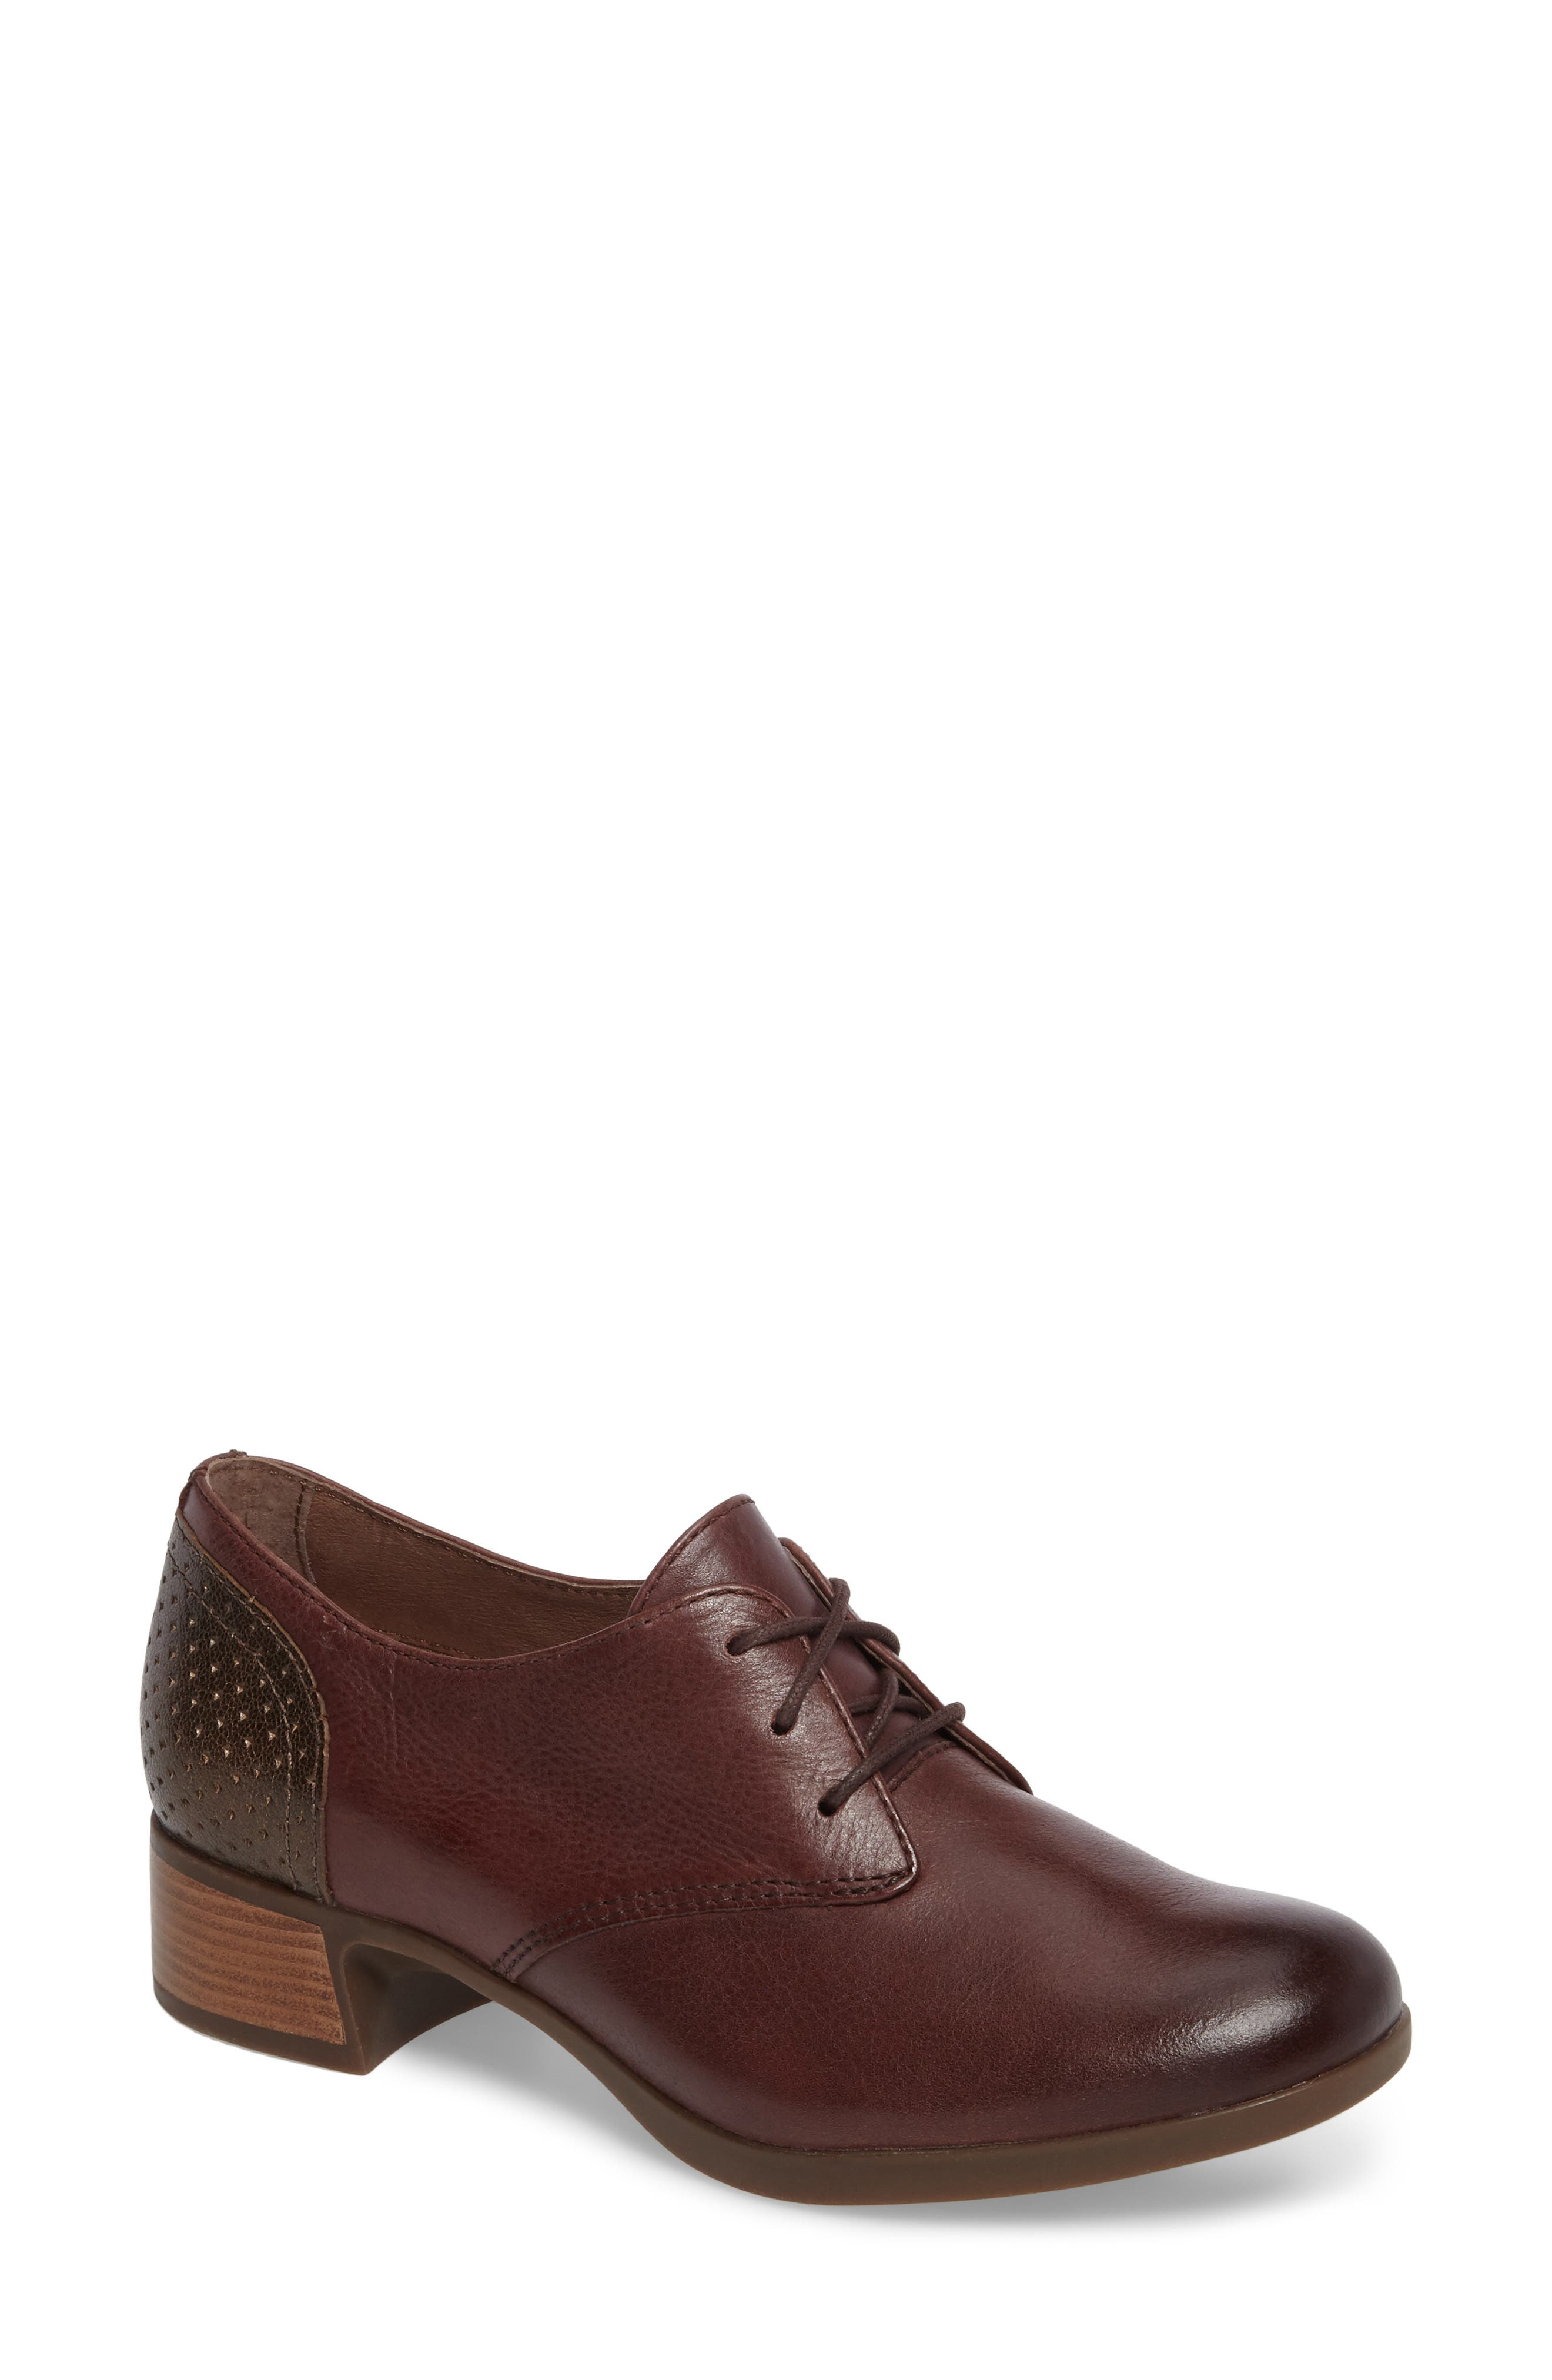 'Louise' Round Toe Derby,                         Main,                         color, WINE BURNISHED LEATHER